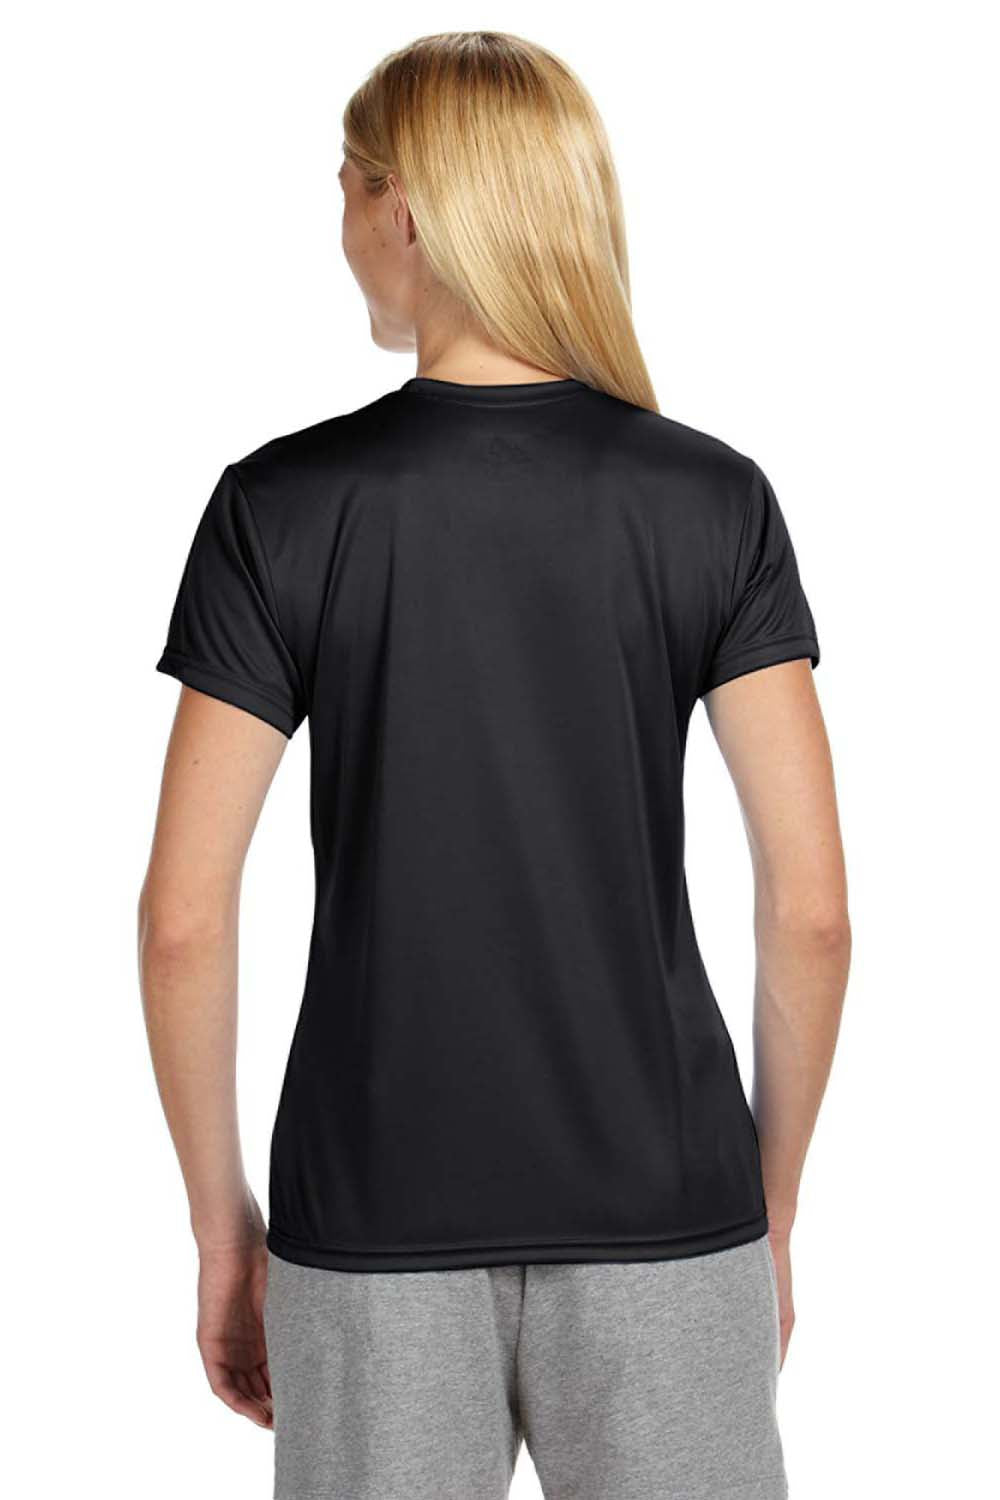 A4 NW3201 Womens Cooling Performance Moisture Wicking Short Sleeve Crewneck T-Shirt Black Back